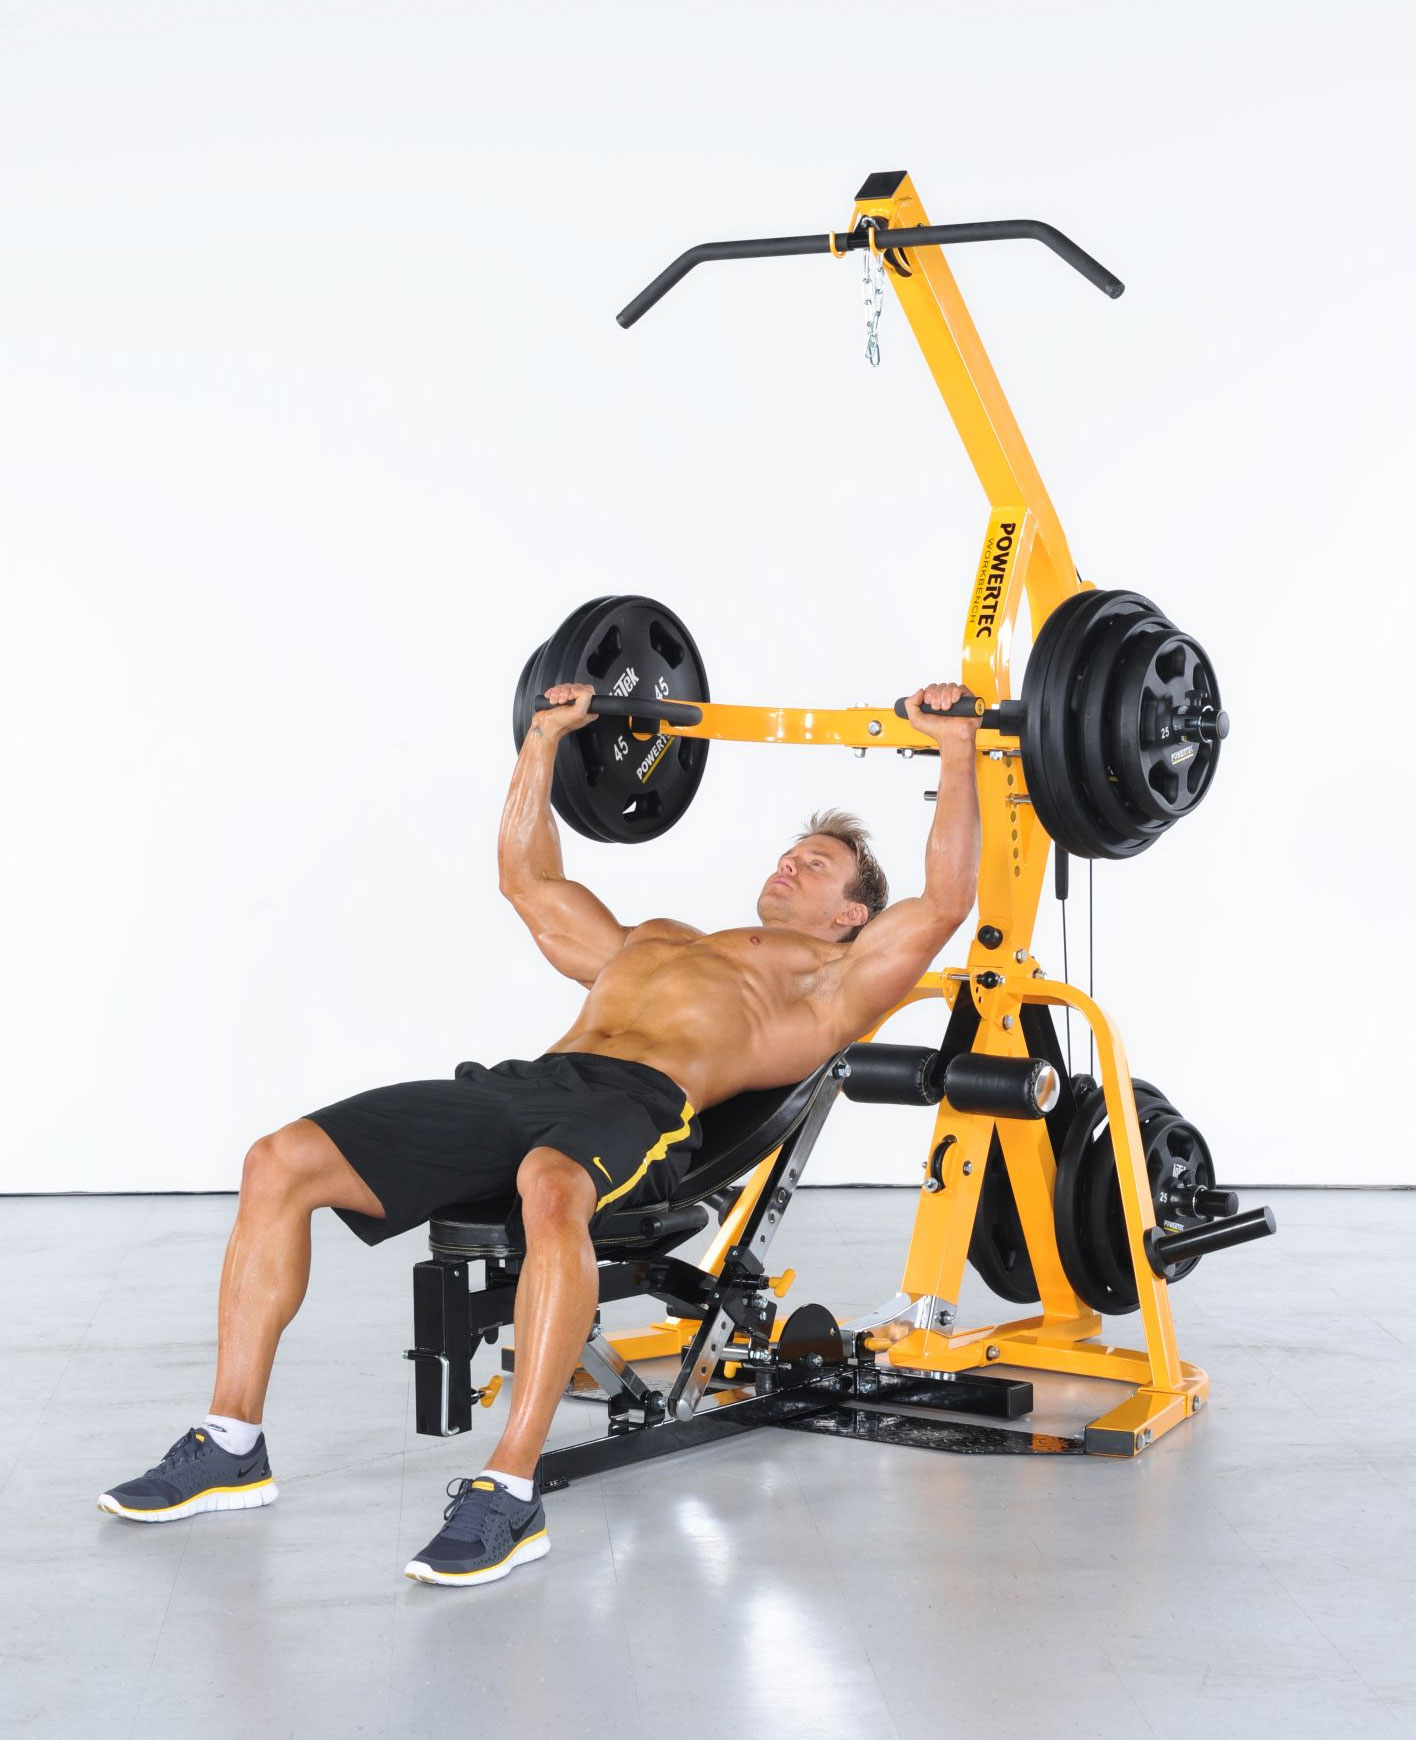 The Total Gym The Total Gym is designed to help you tone, sculpt, and strengthen your entire body without requiring the bulk and expense of a complete home gym.